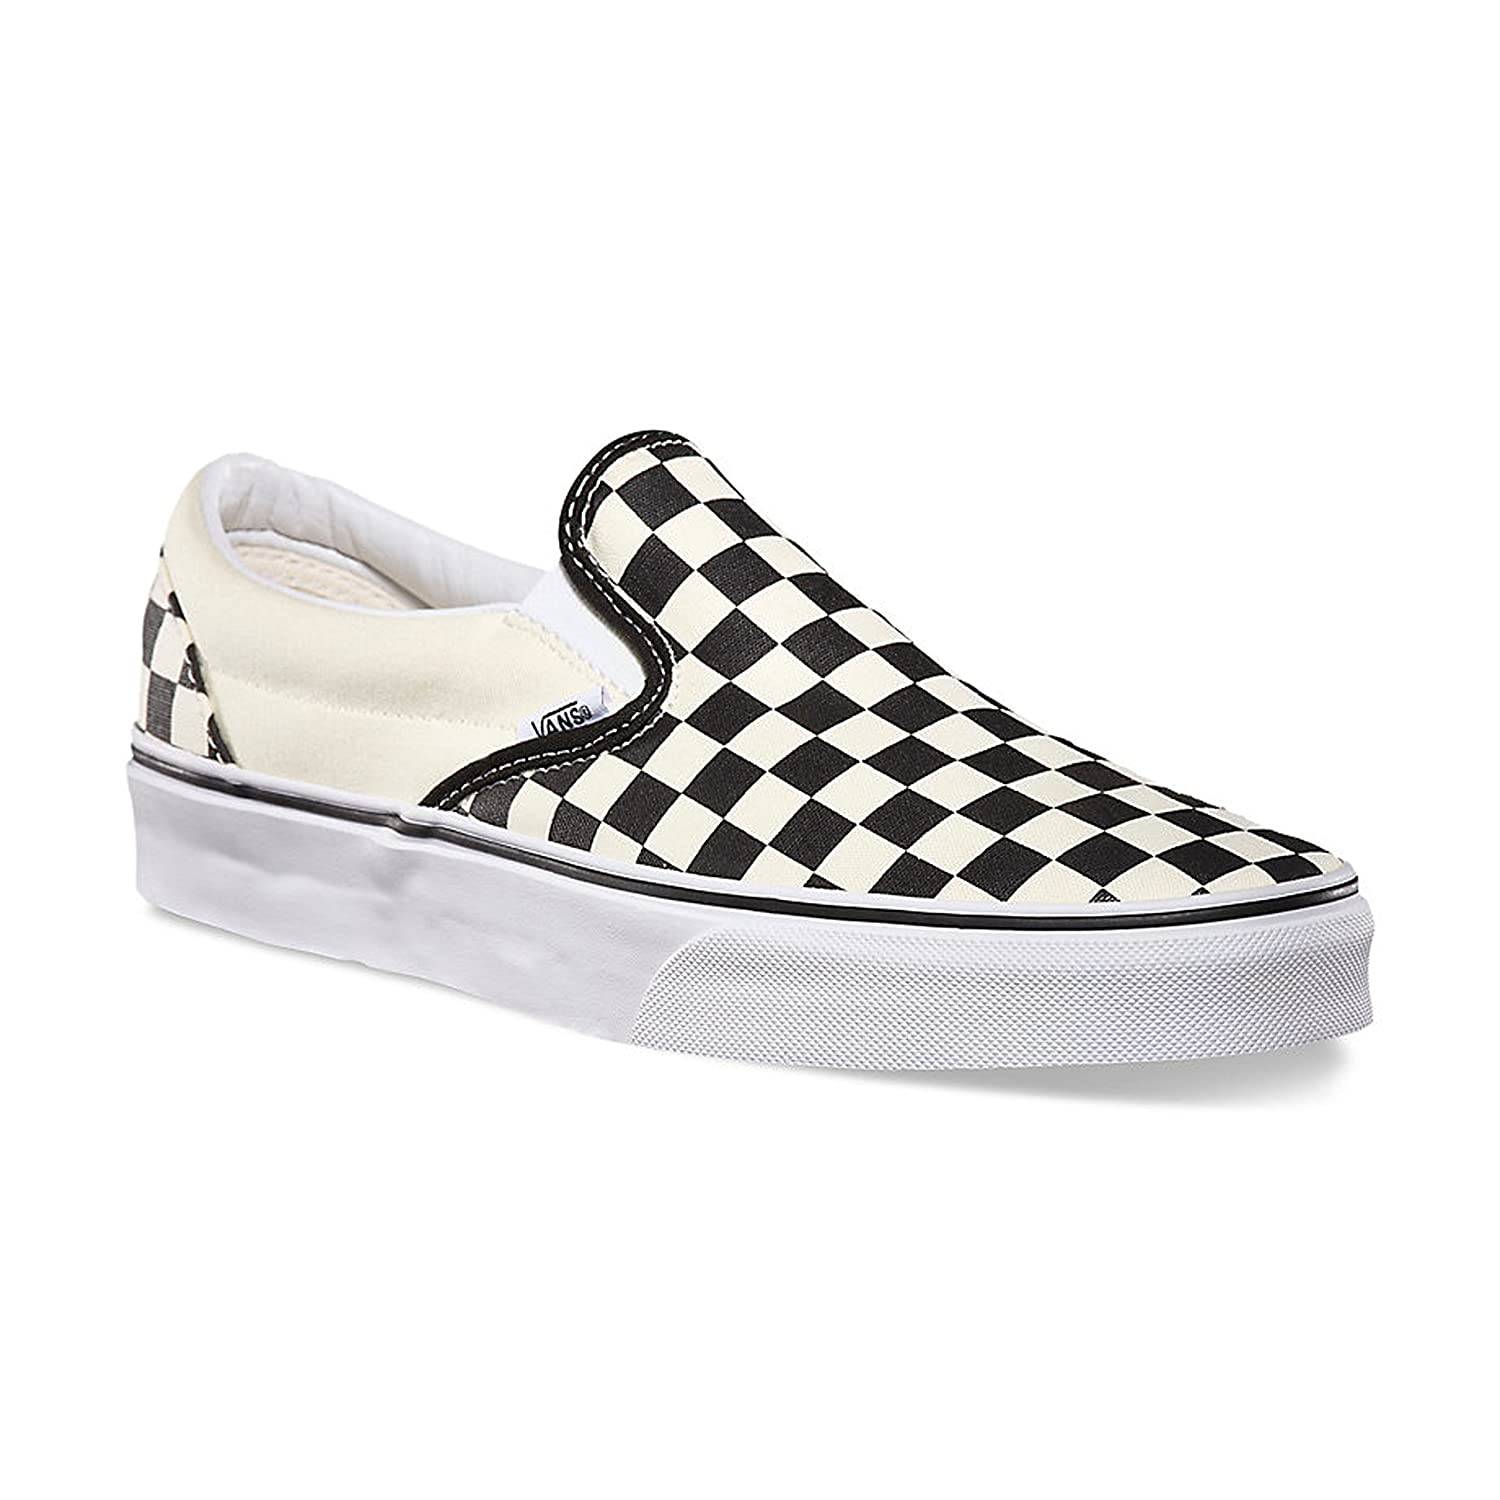 Vans Unisex Checkerboard Slip On Black/Off White Check Vn000 Eyebww Skate Shoes by Vans